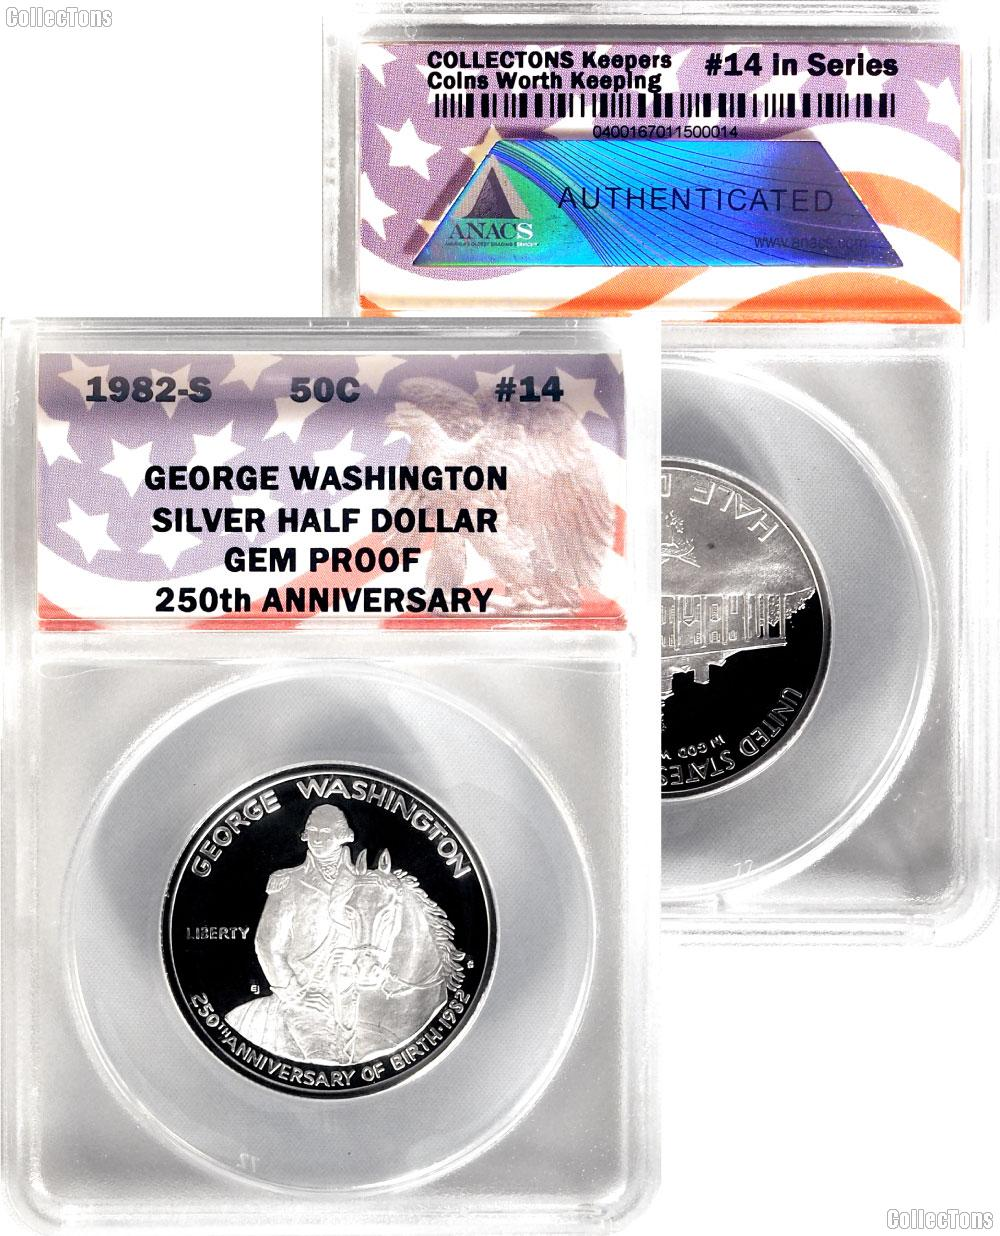 CollecTons Keeper #14: 1982-S George Washington Proof Half Dollar